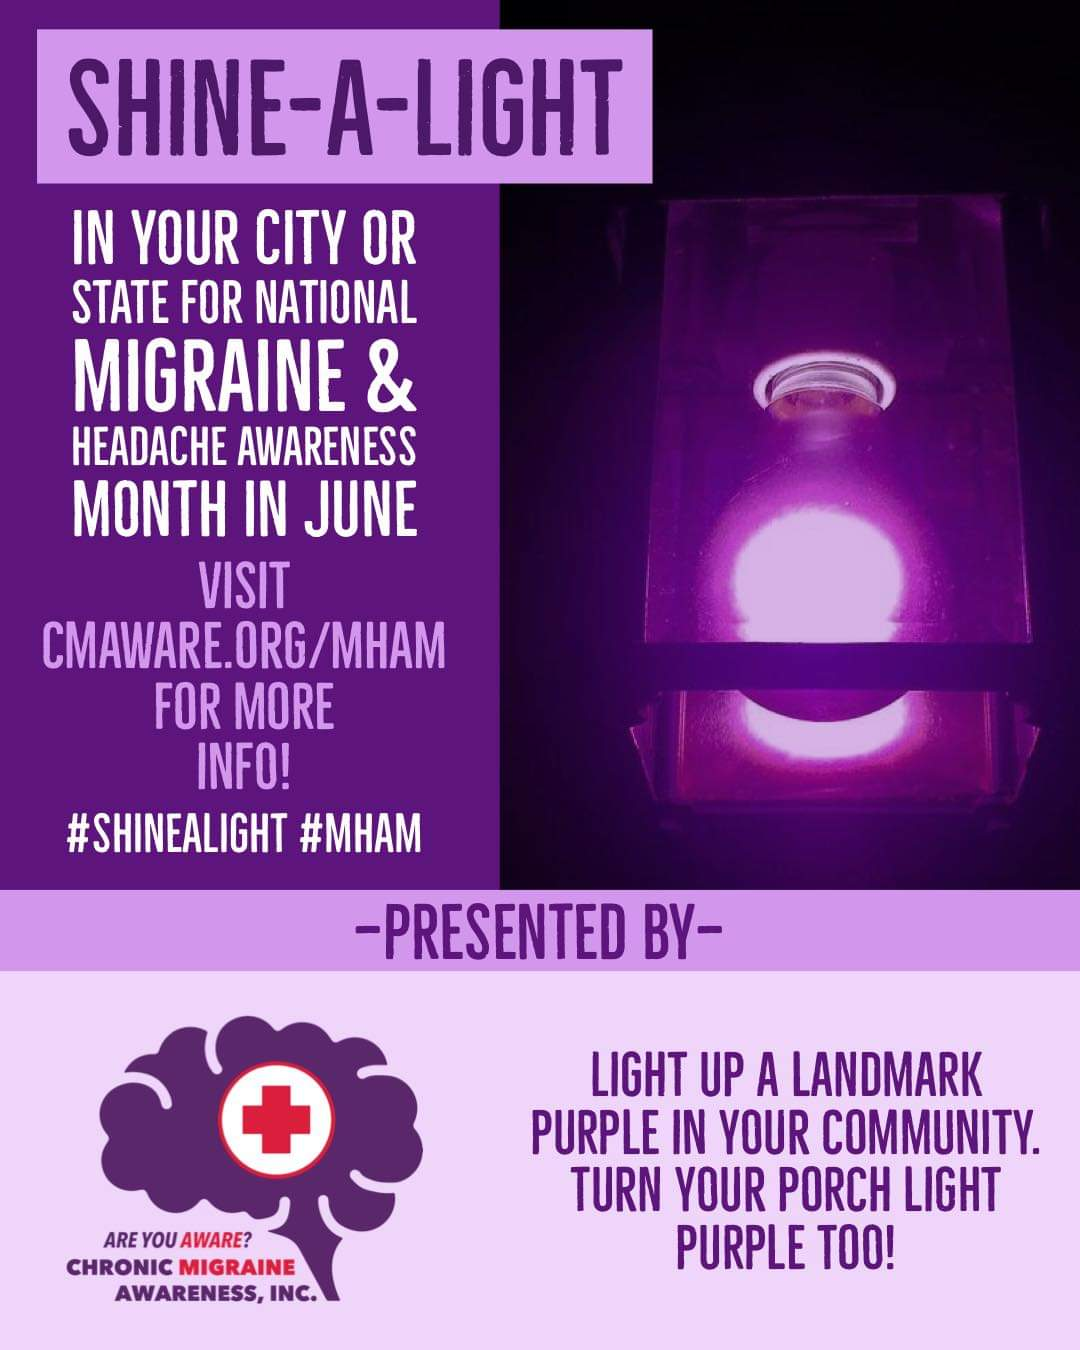 Shine A Light in your city or state for national migraine and headache awareness month in june. Light up a landmark purple in your community. Turn your porch light purple too!